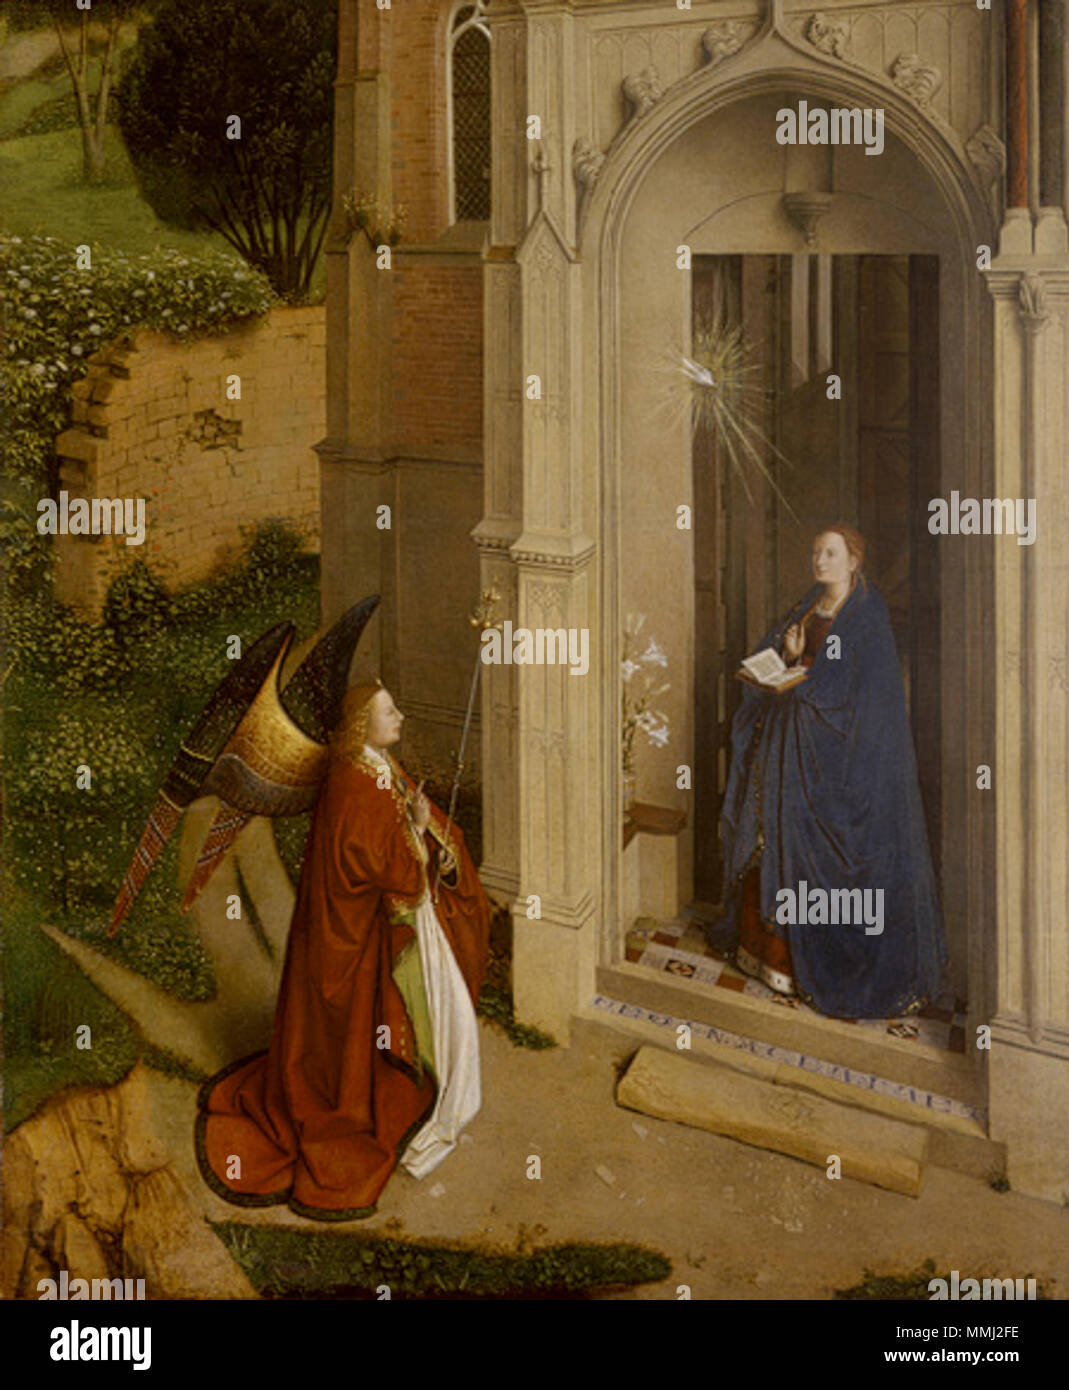 .  English: Painting by Petrus Christus  Working Title/Artist: The Annunciation Department: European Paintings Culture/Period/Location:  HB/TOA Date Code:  Working Date: 1450 photography by mma 1993, transparency front 4 8x10 scanned and retouched by film and media (jnc) 12 11 08 Anunciacion-Metropolitan - Stock Image